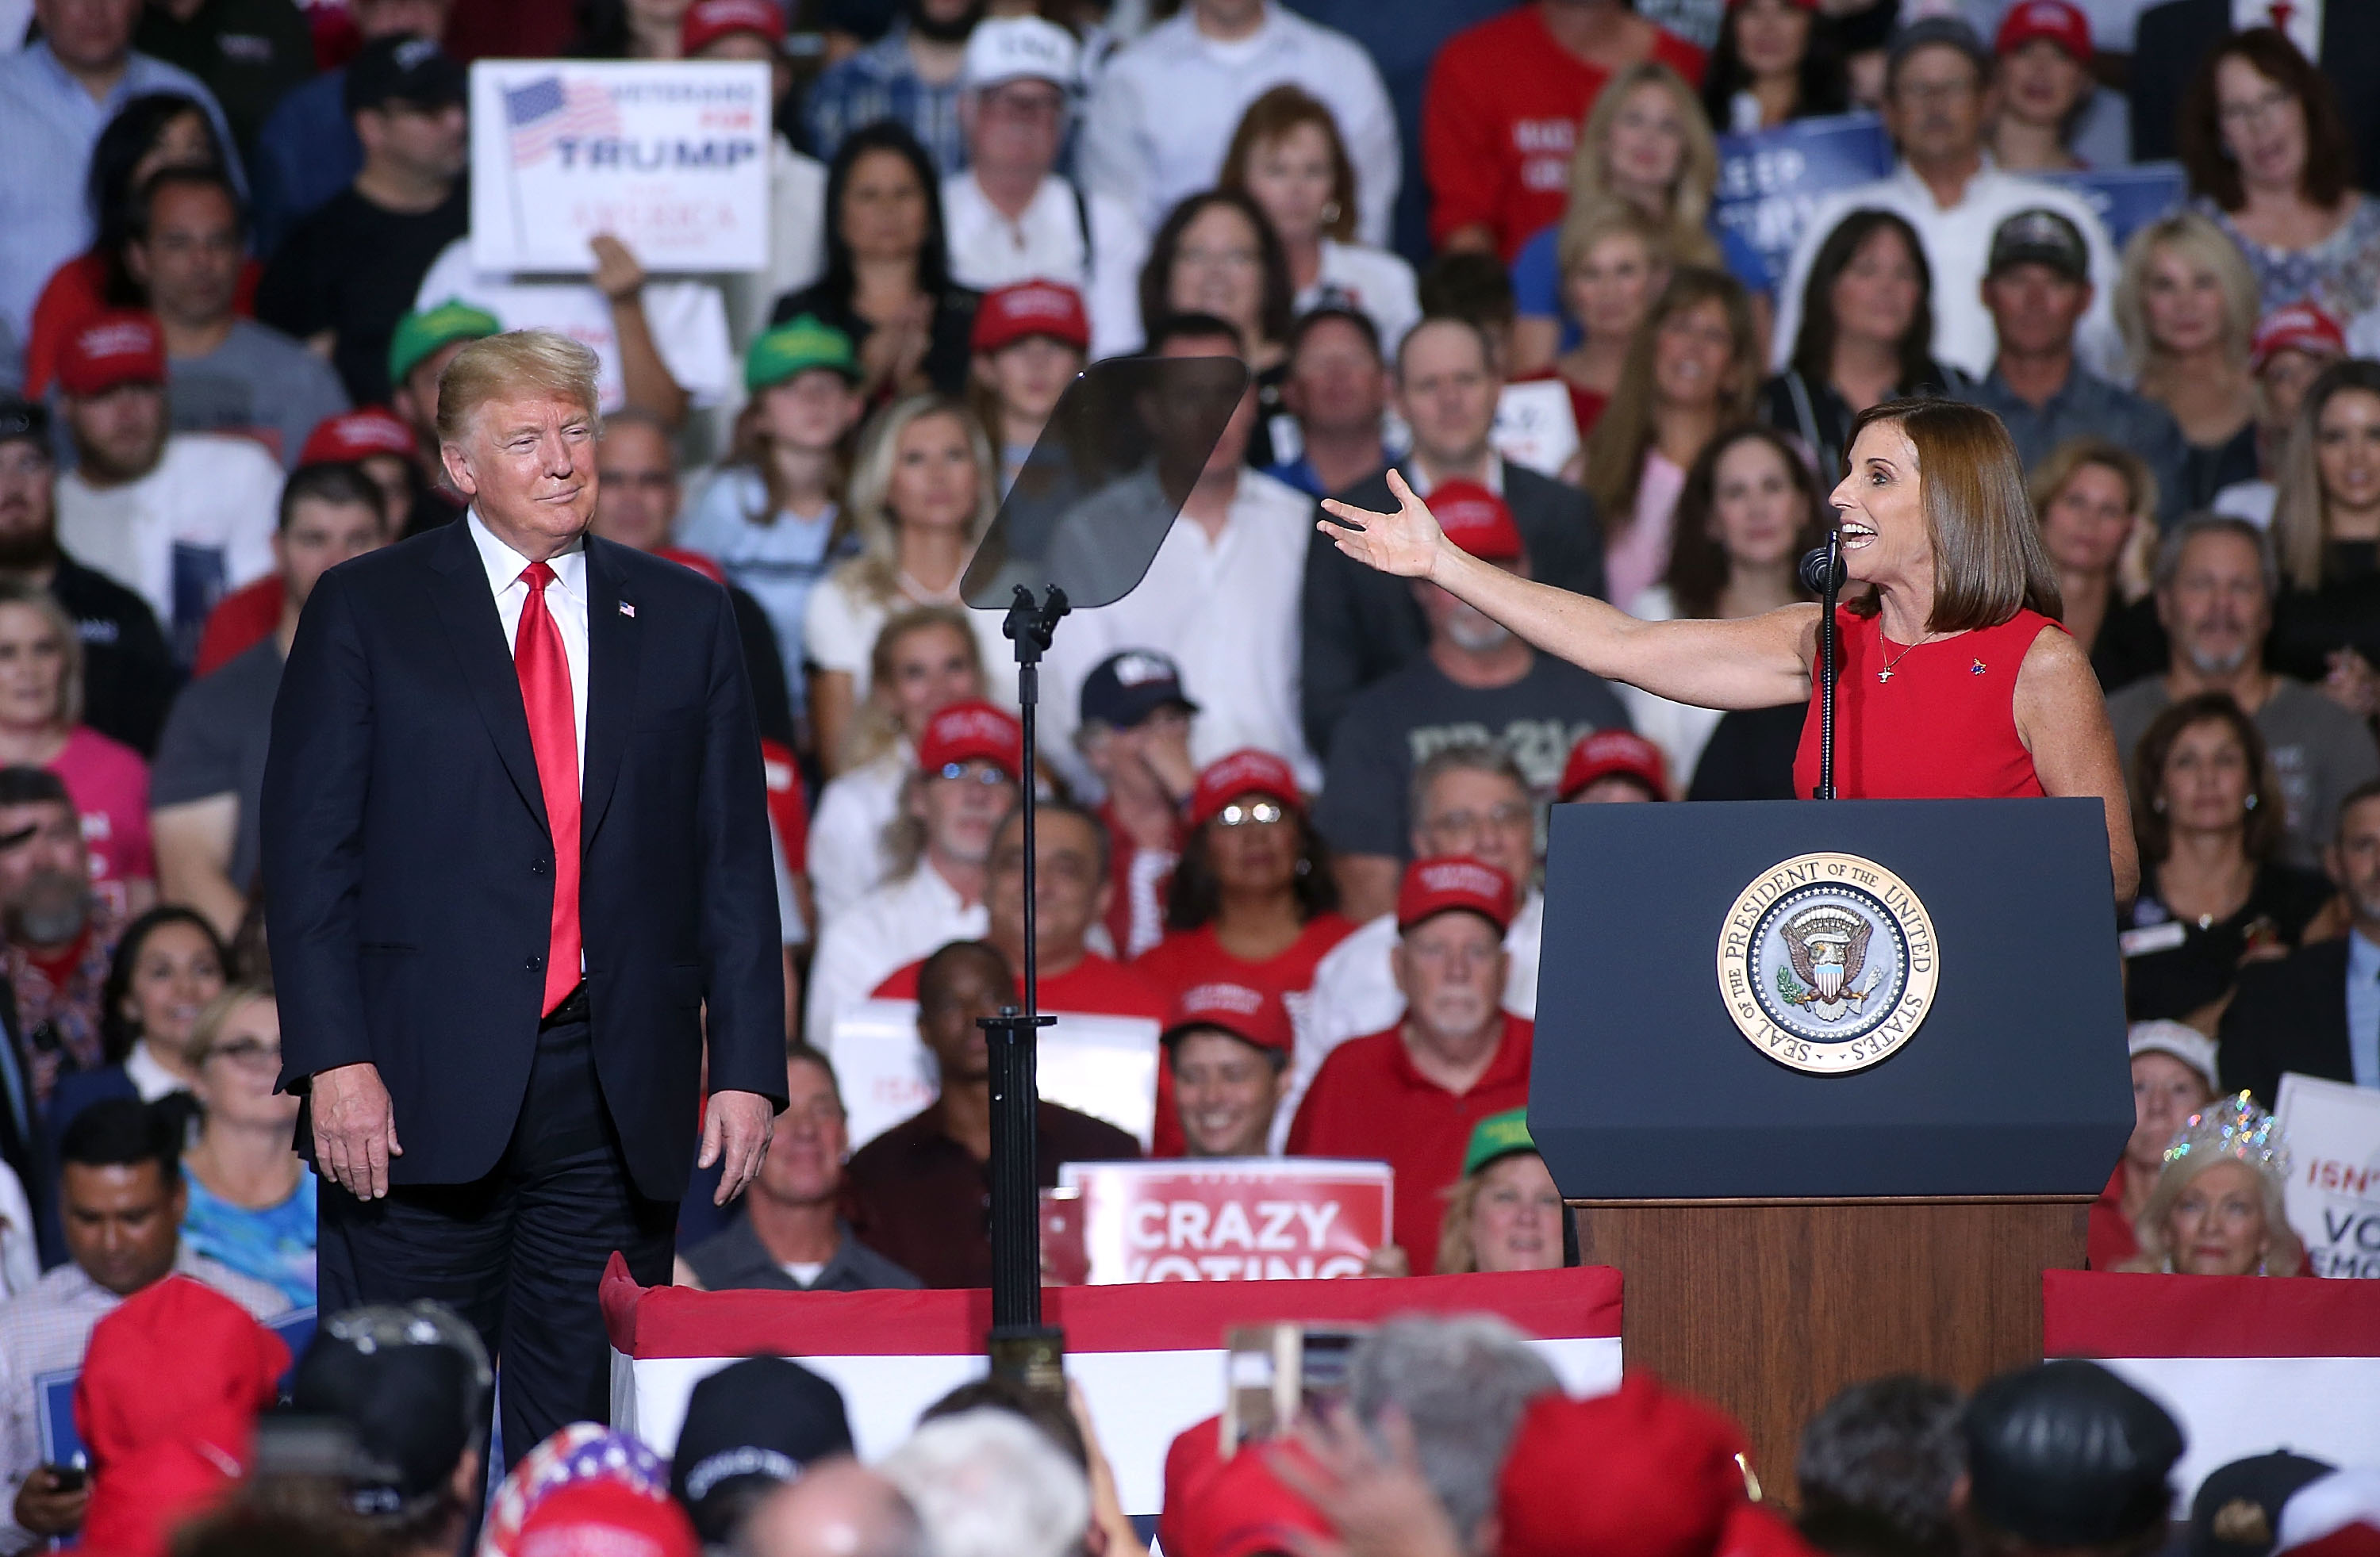 Representative Martha McSally holds out her arm in a gesture toward Donald Trump onstage at a political rally.